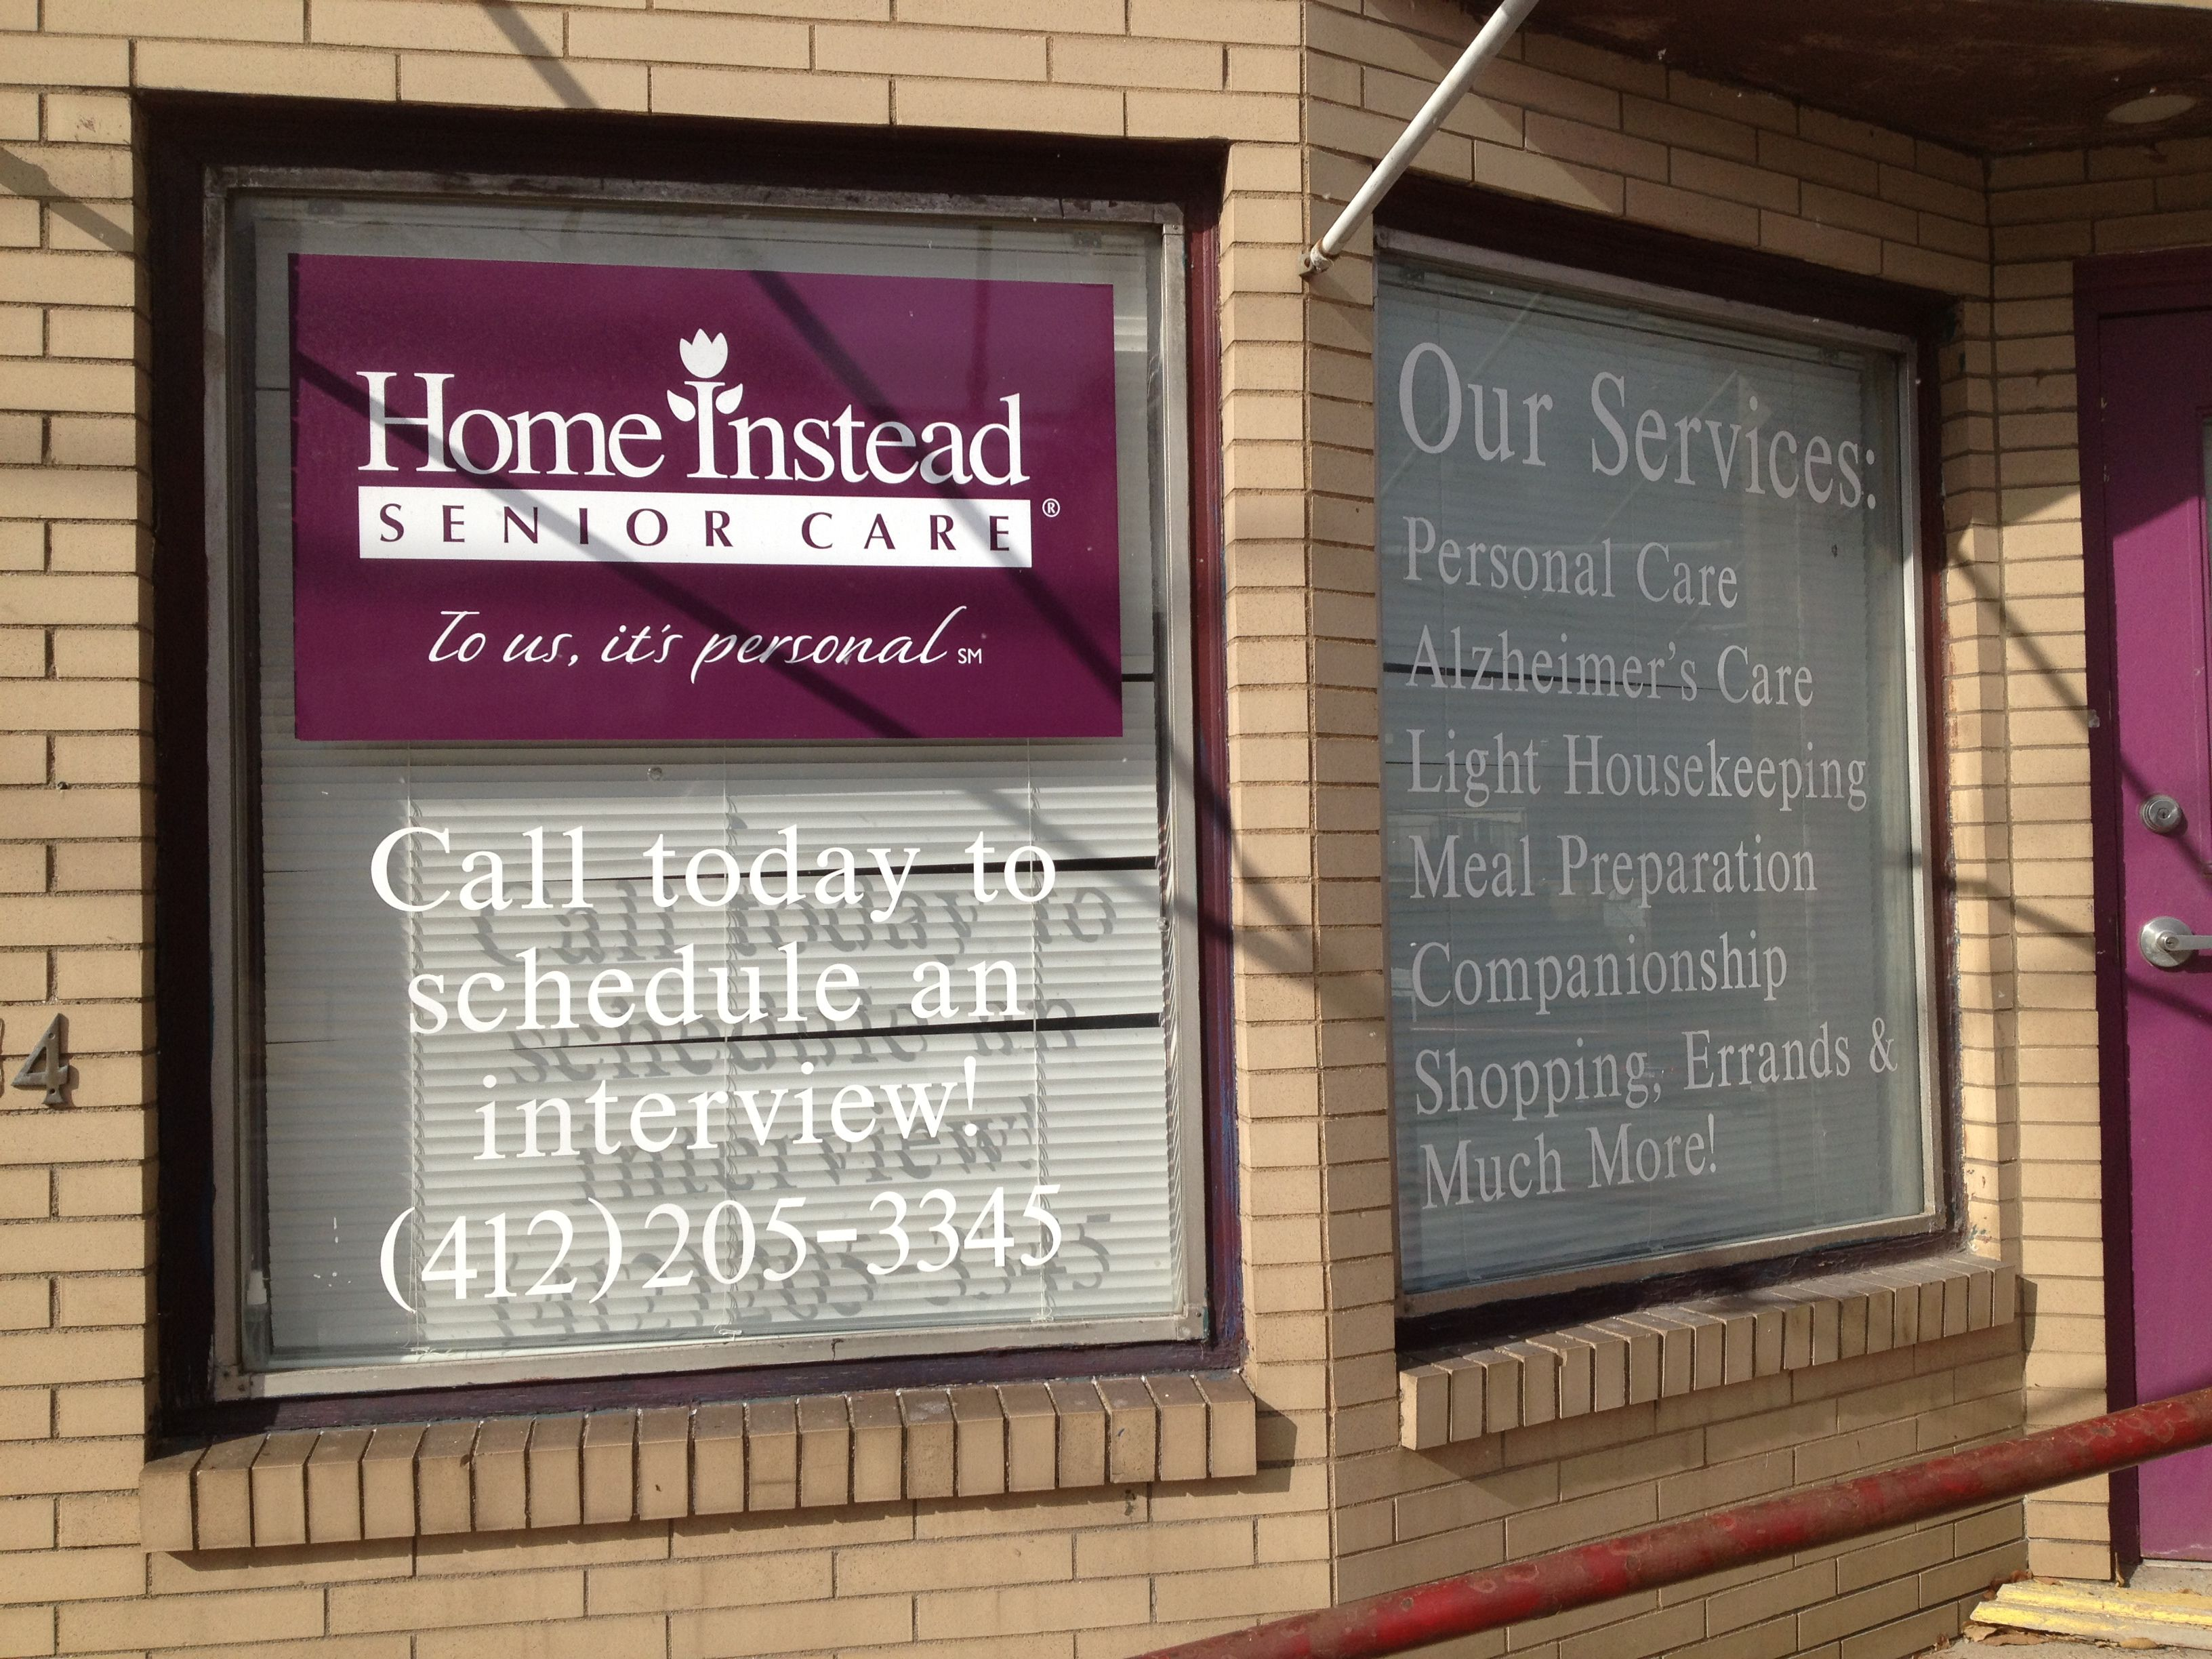 Home Instead Senior Care Window Graphics And Lettering Window Graphics Lettering Shop Front Design